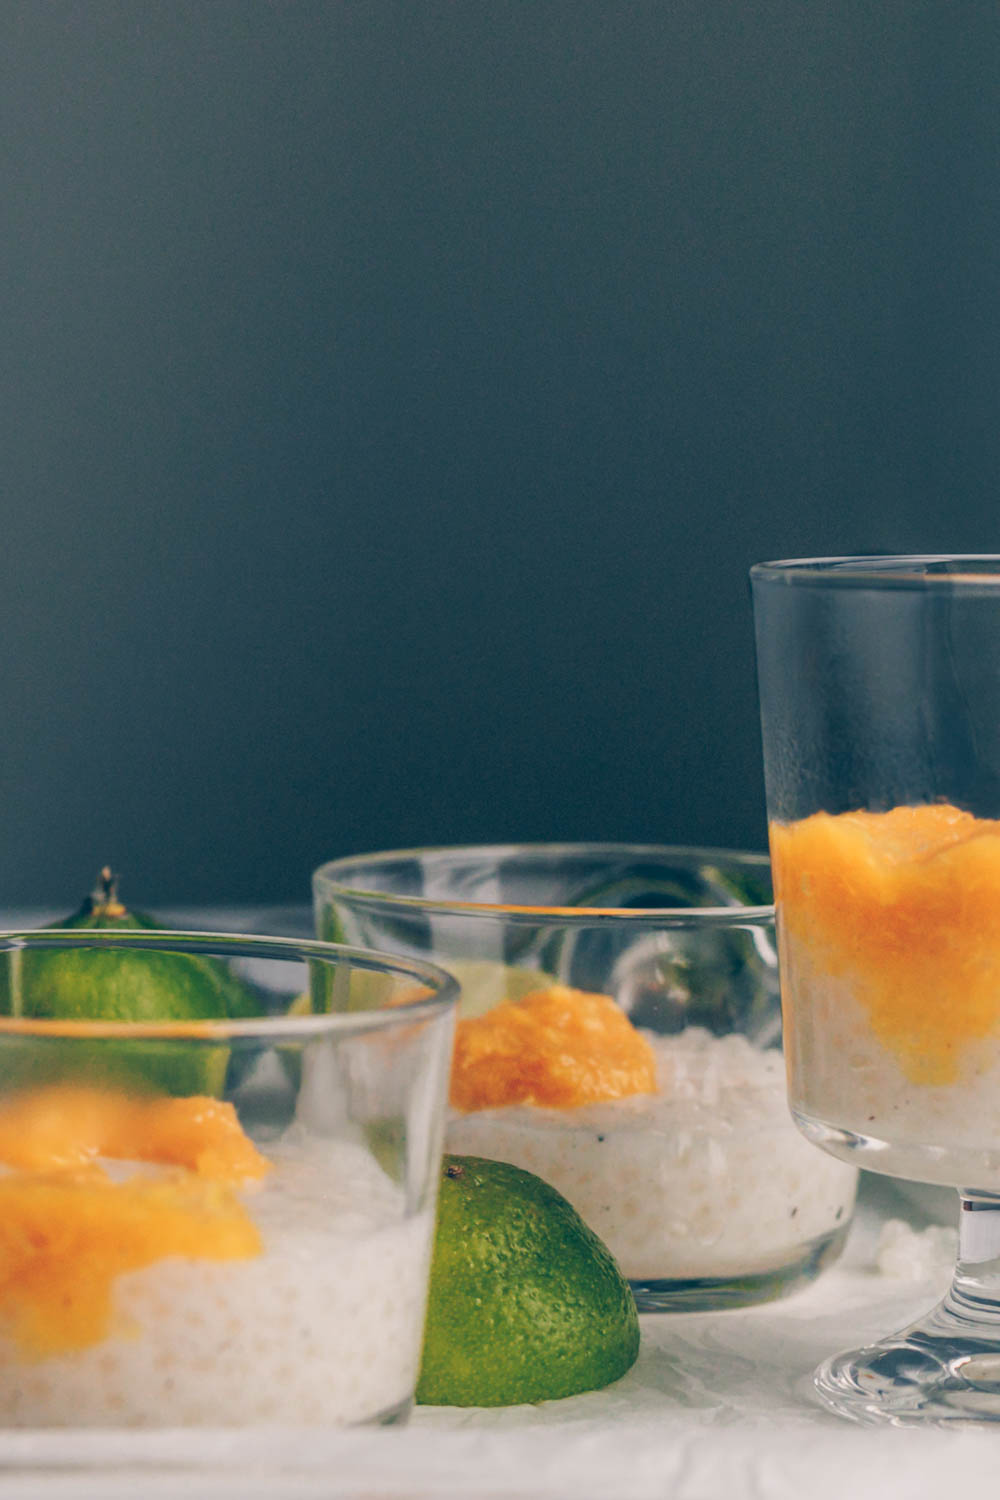 Lime Coconut Tapioca Pudding with Cardamon Orange Compote (vegan & gluten-free) by black.white.vivid